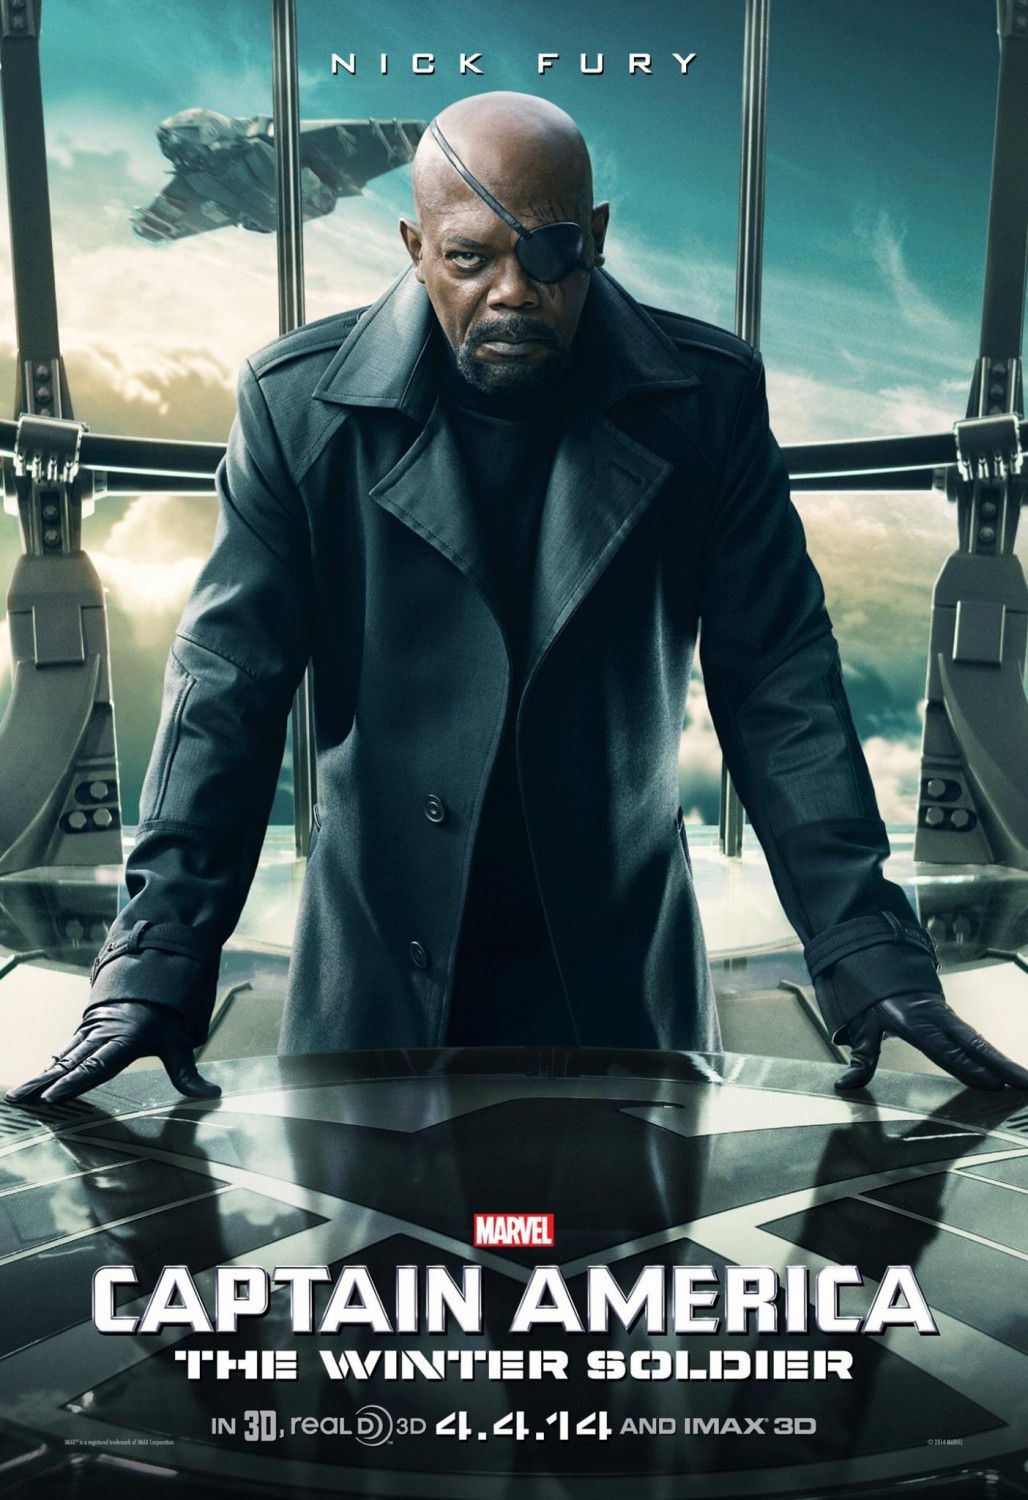 Film - Captain America 2 - the Winter Soldier - Capitan America -Nick Fury (Samuel L. Jackson)